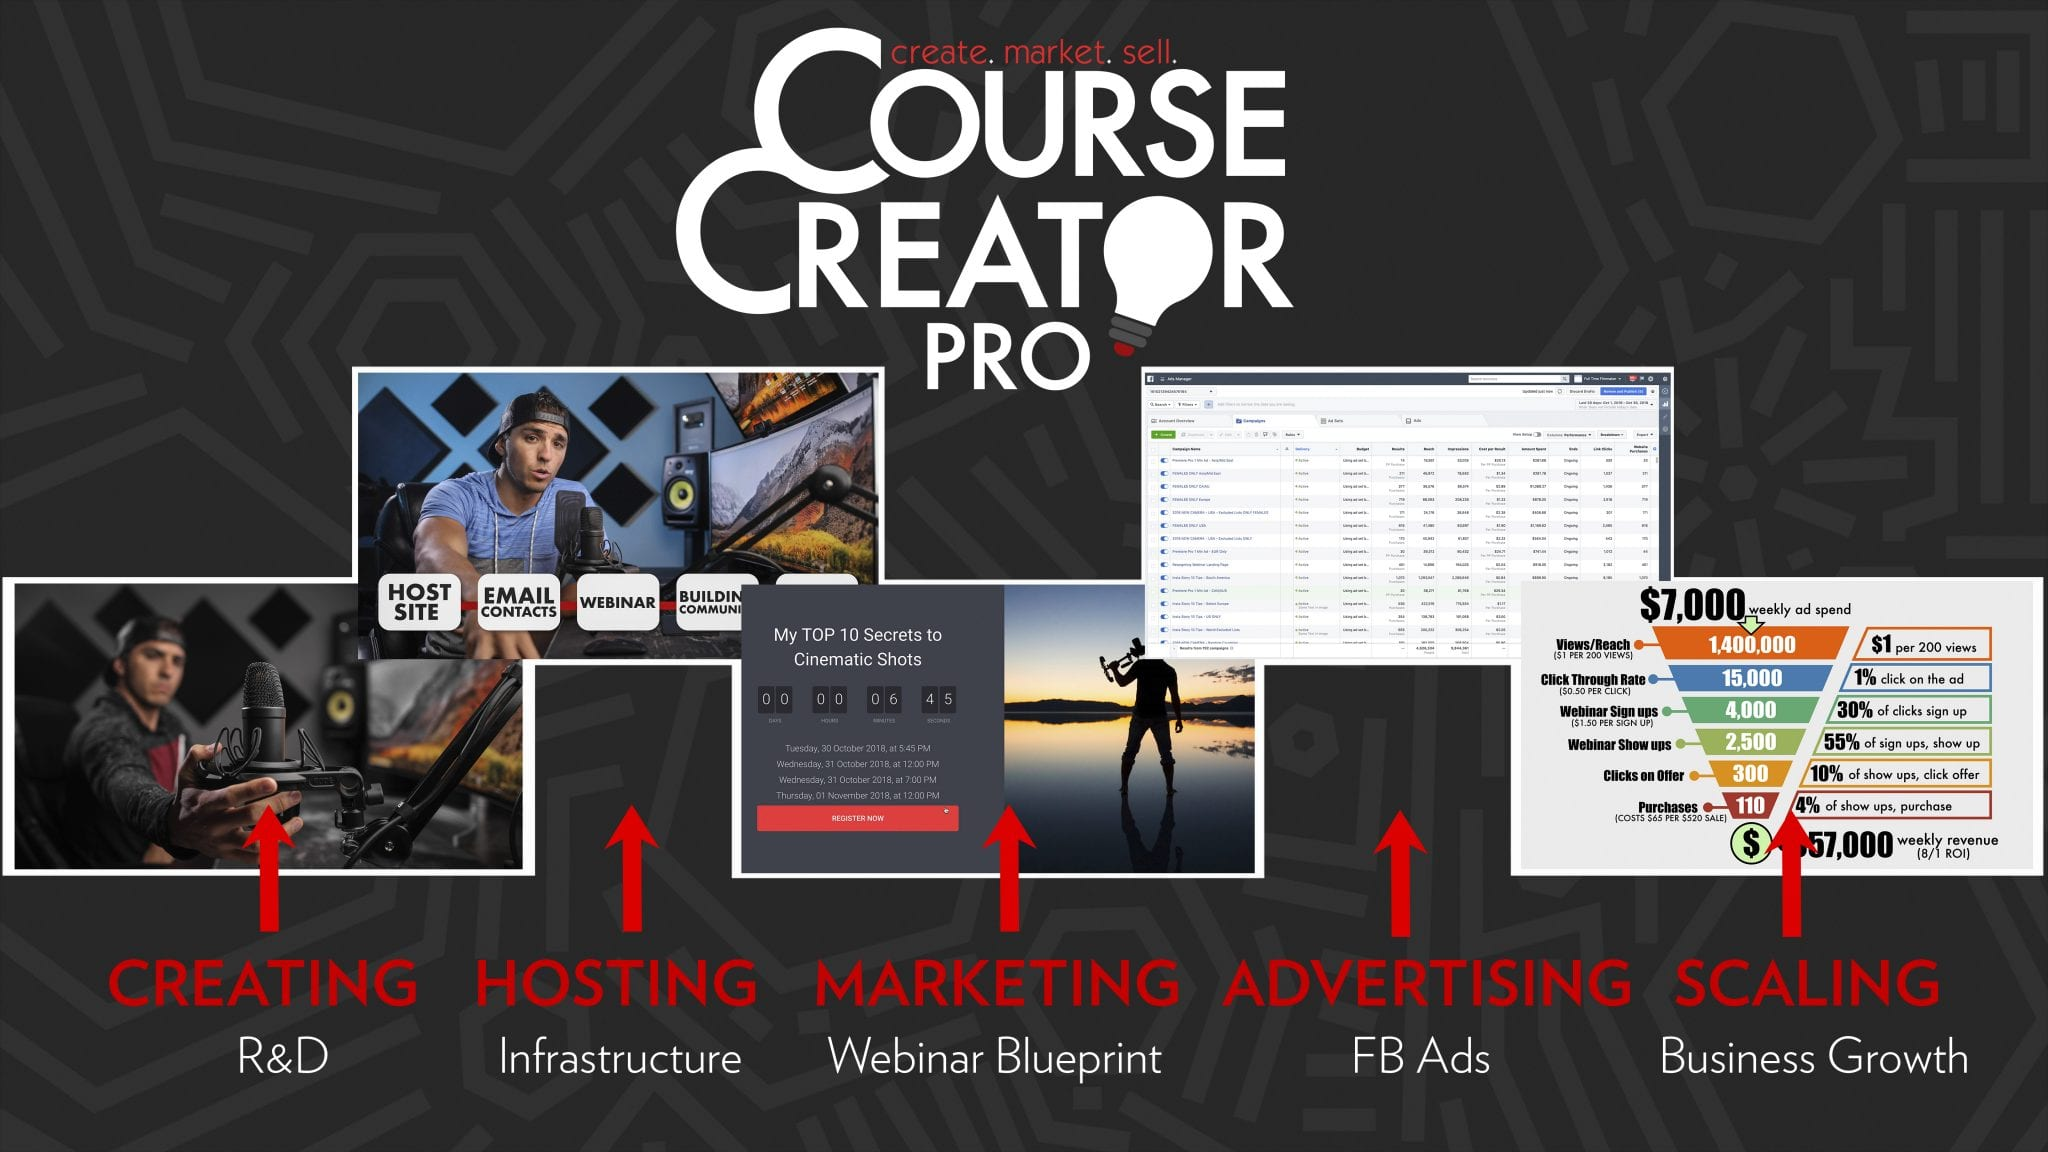 Parker Walbeck's Course Creator Pro Course Review